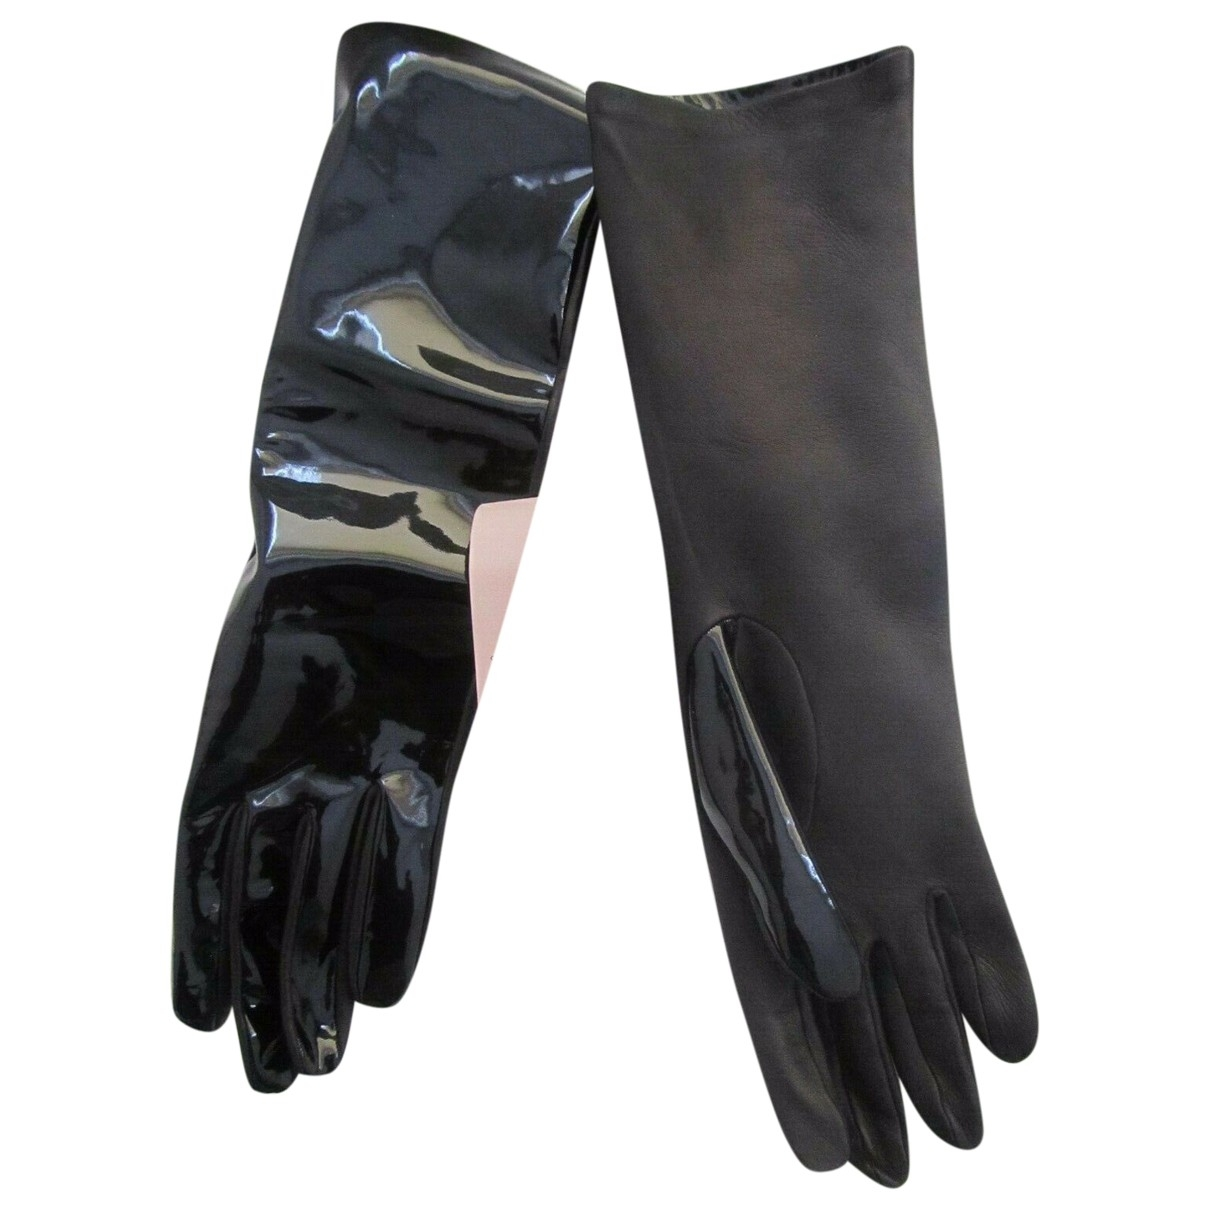 Christopher Kane \N Black Patent leather Gloves for Women M International